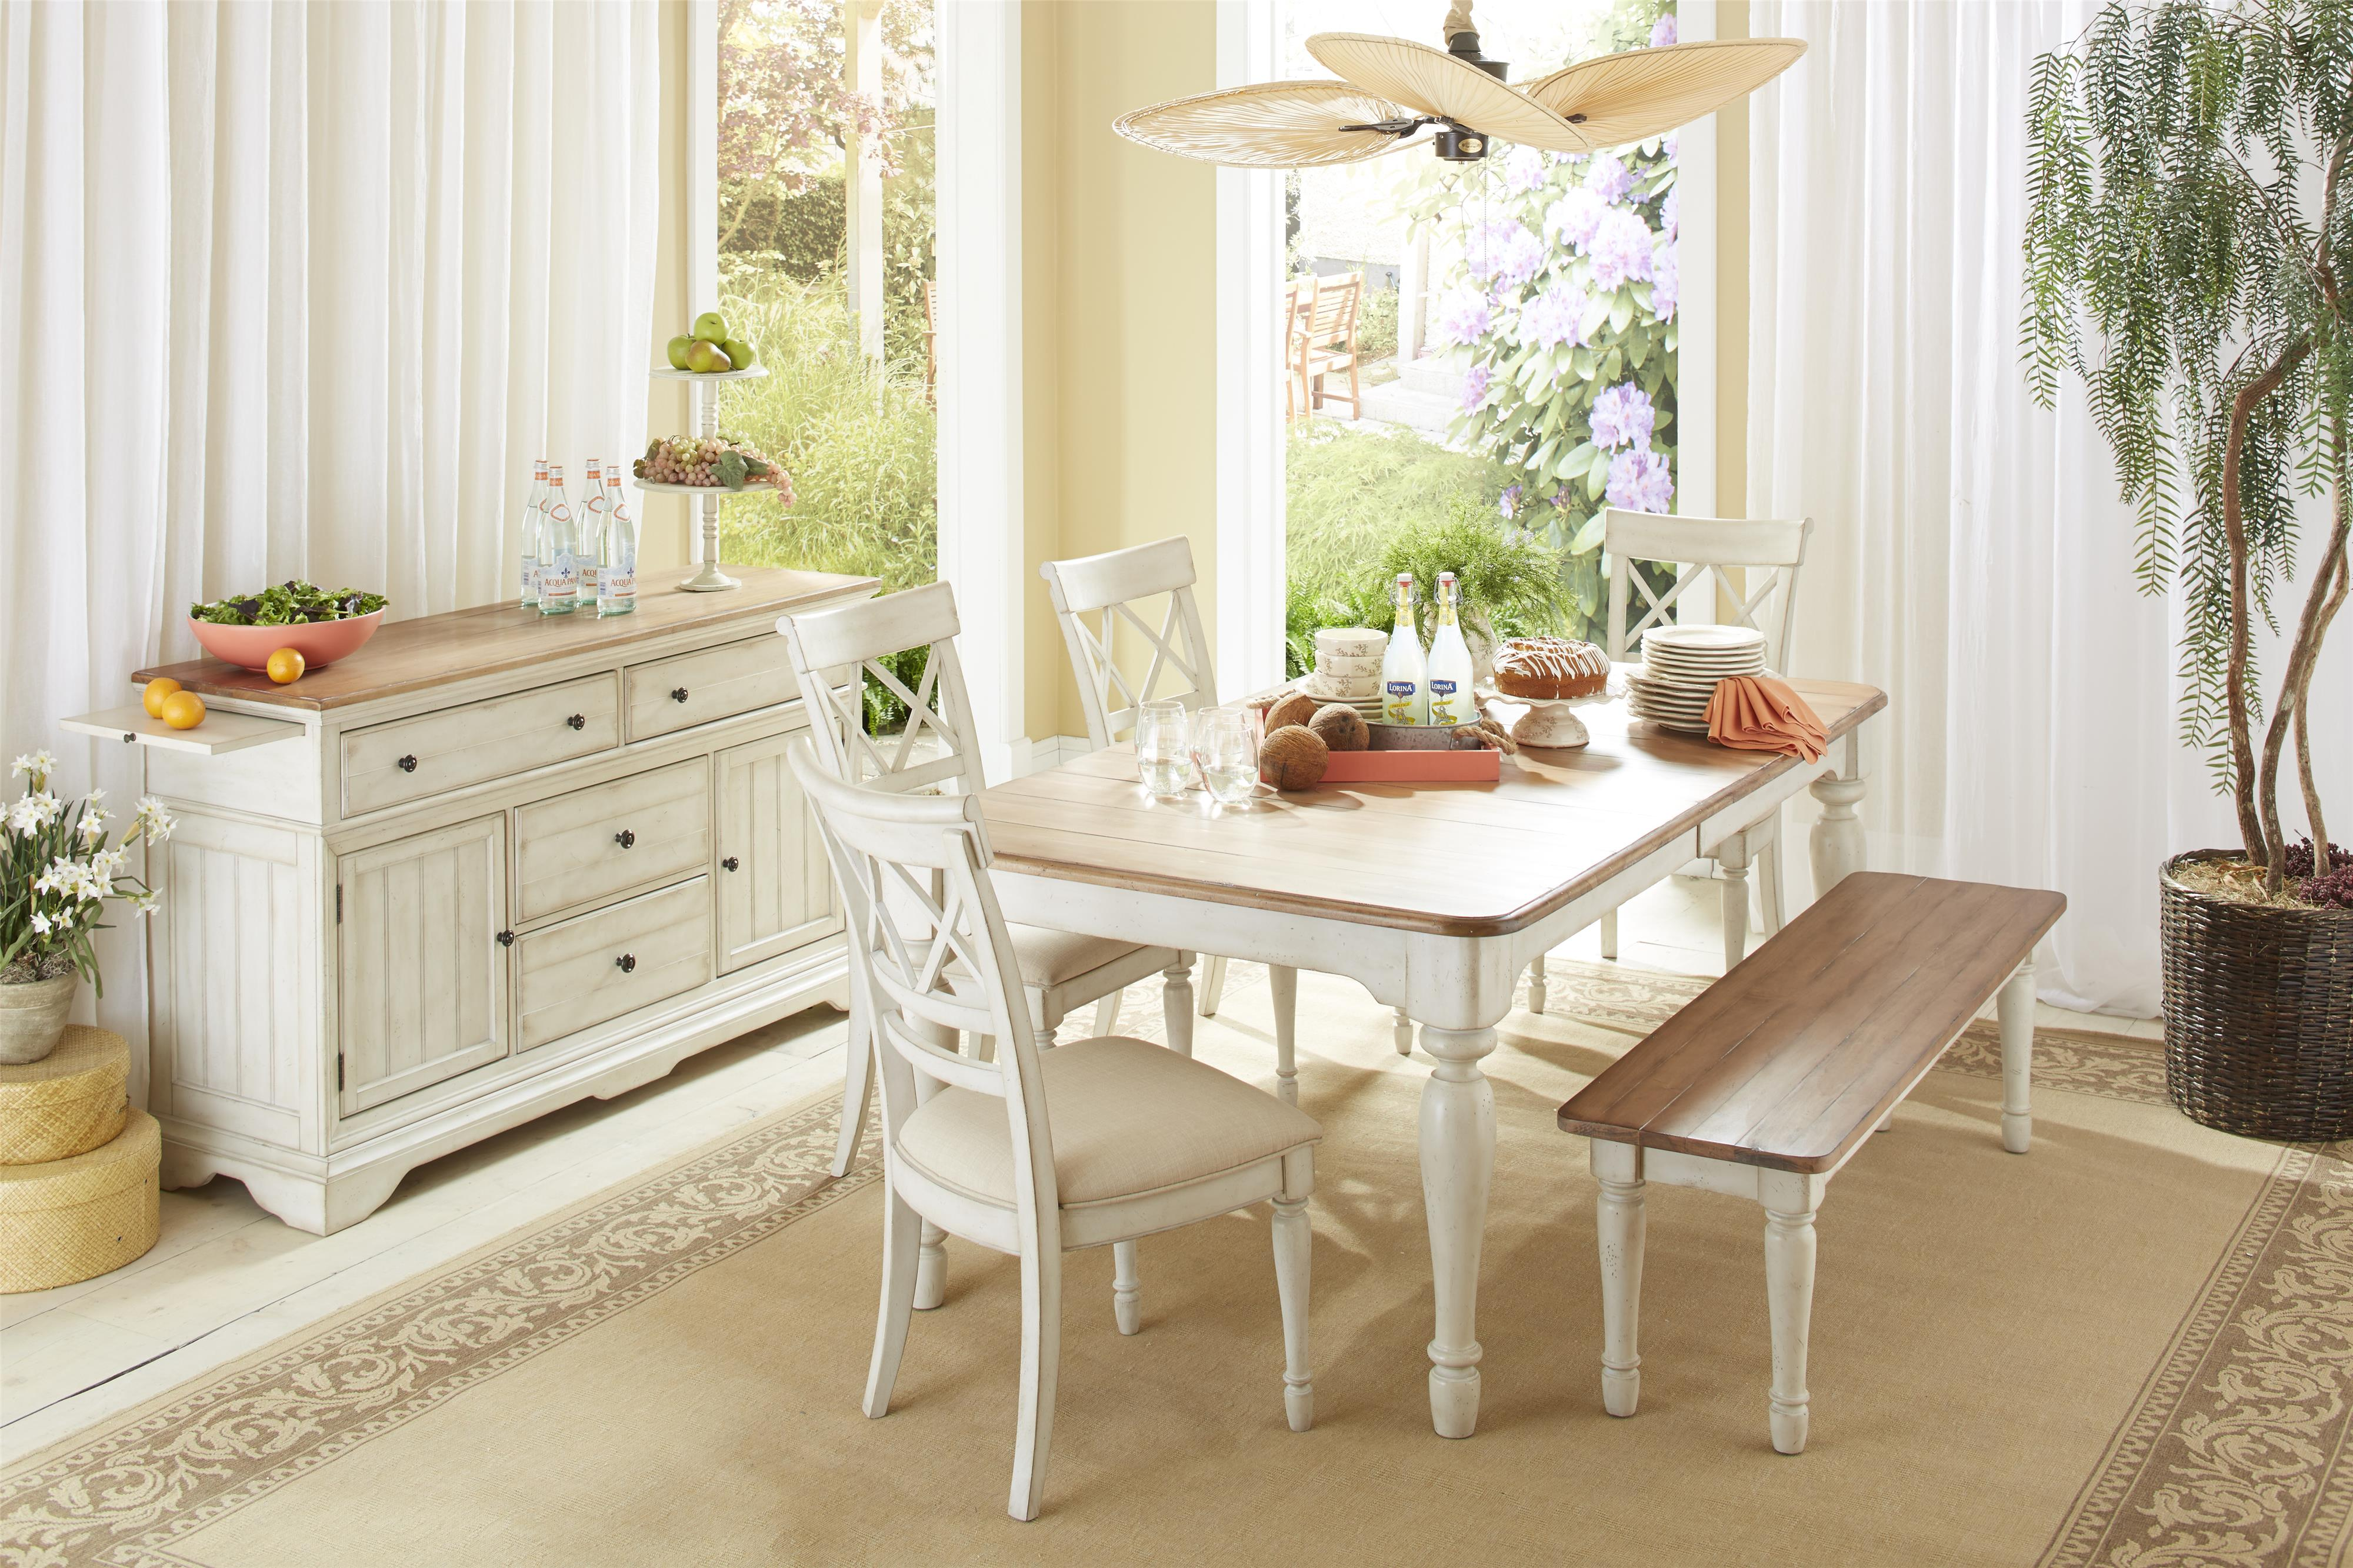 Cresent Fine Furniture Cottage Casual Dining Room Group - Item Number: 201 Dining Room Group 2